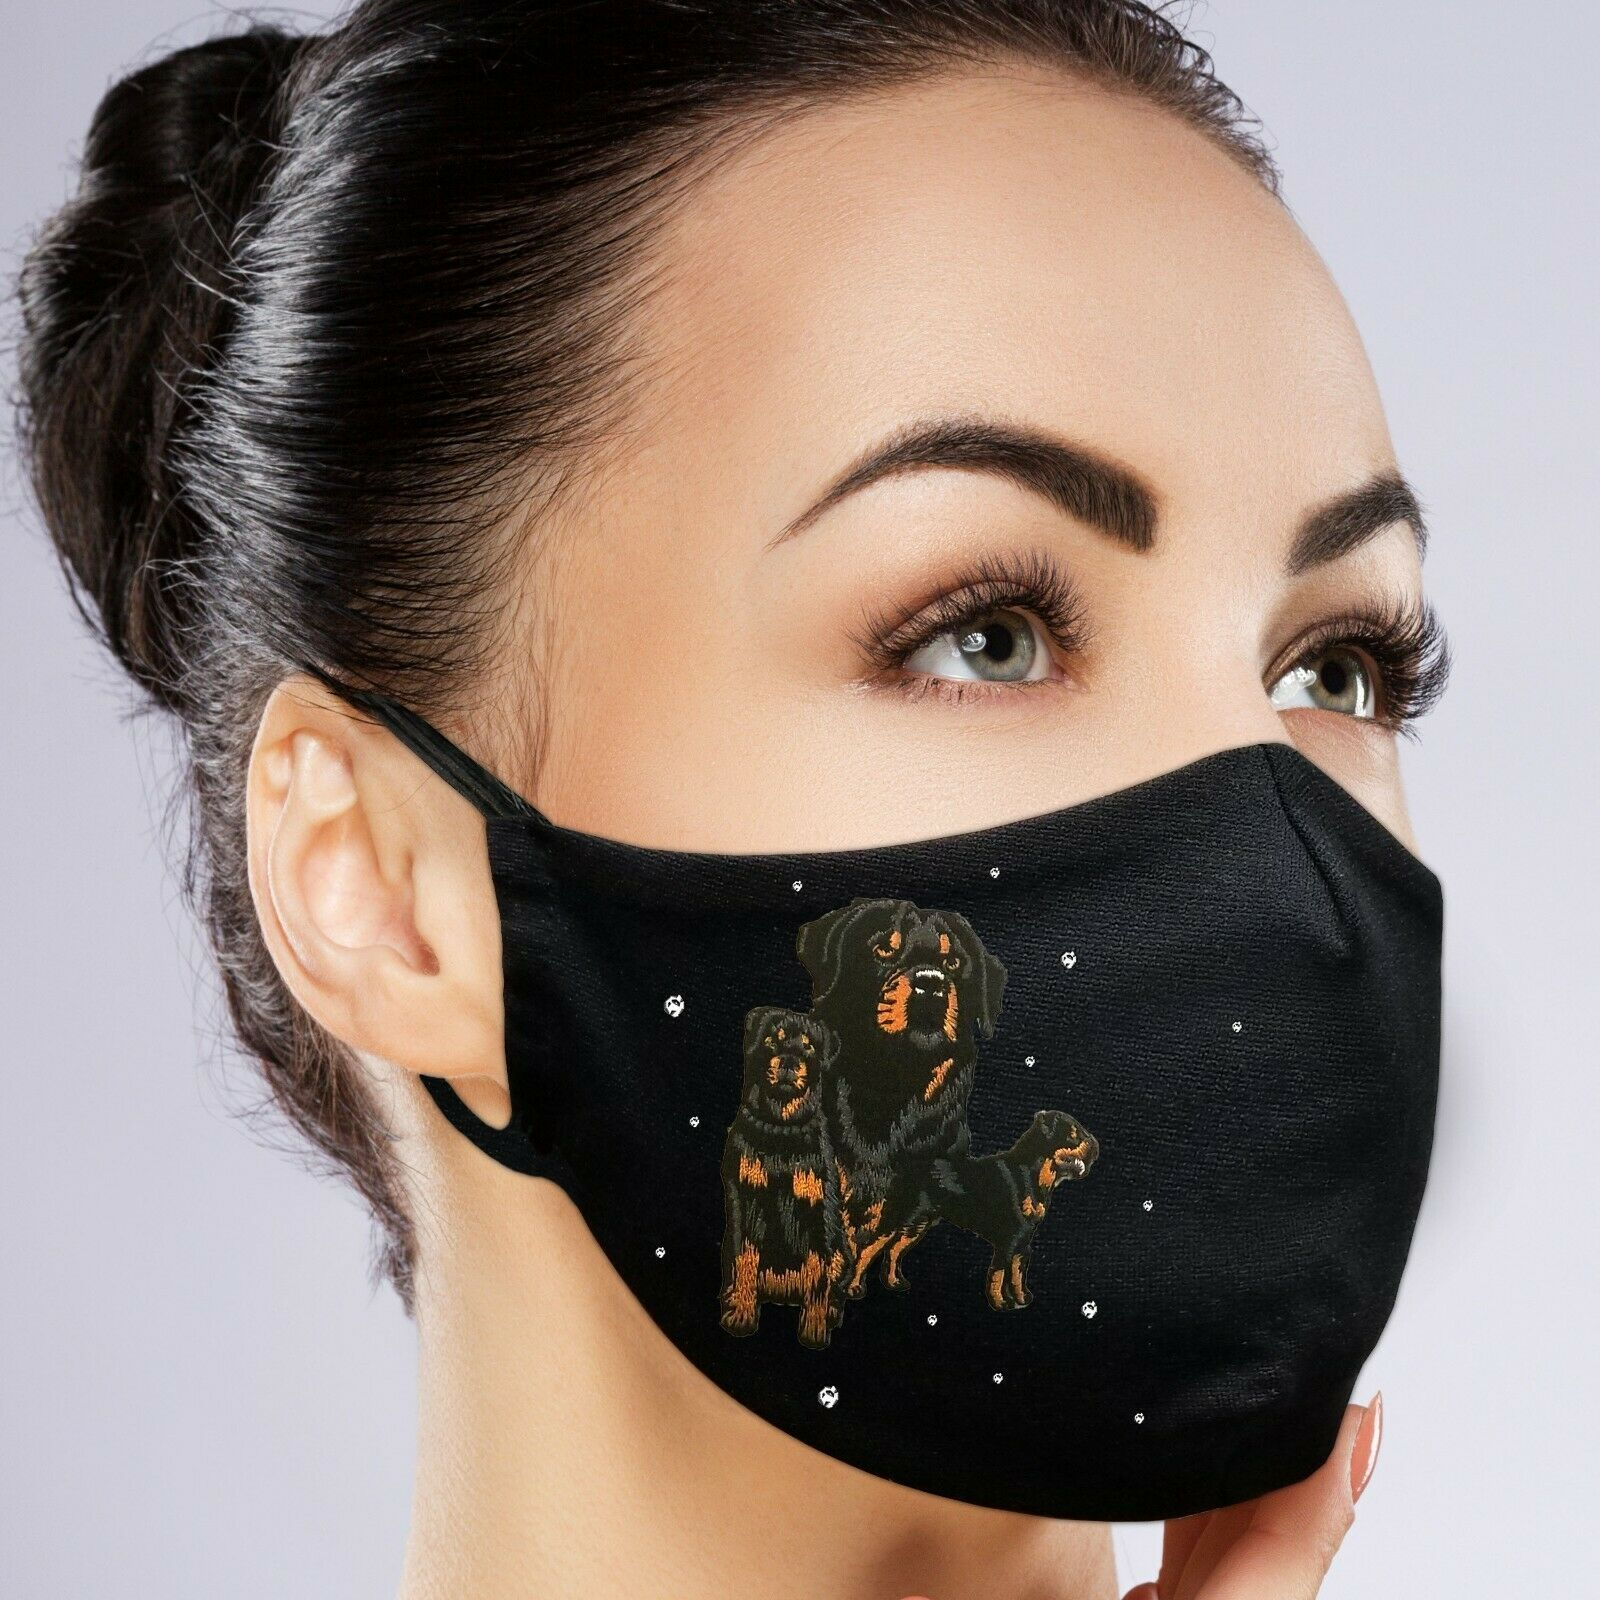 Custom Face Mask Black Filter Pocket Embroidery Crystal Rhinestones In 2020 Cat Face Mask Dog Face Face Mask